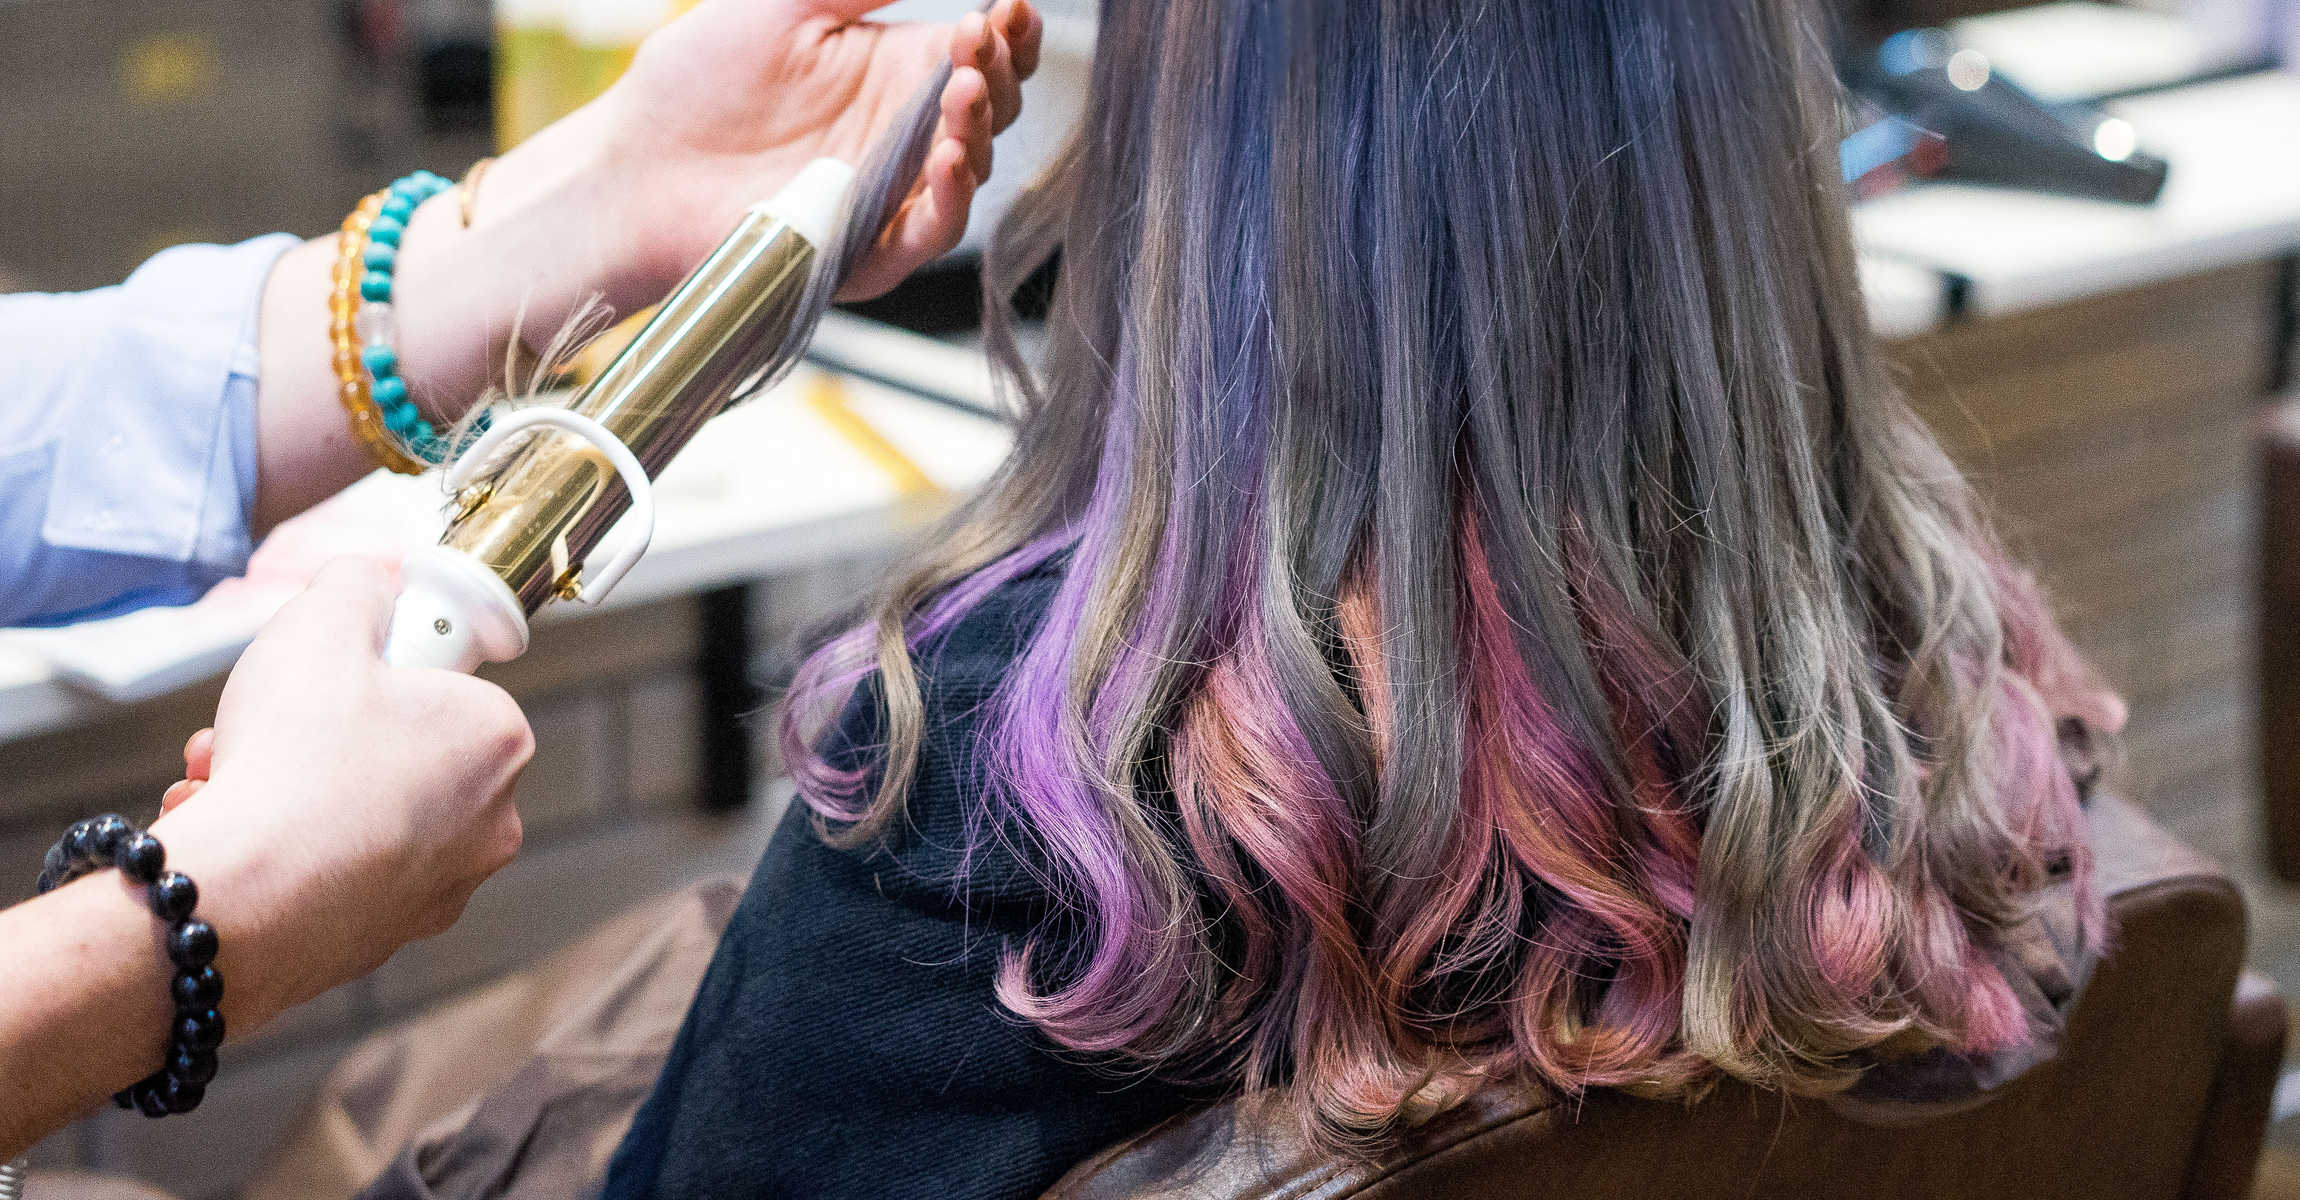 Agent WW Captured Northern Lights in Her Hair with Inner Galaxy Hair Colour at HaLu Hair Design at River Valley